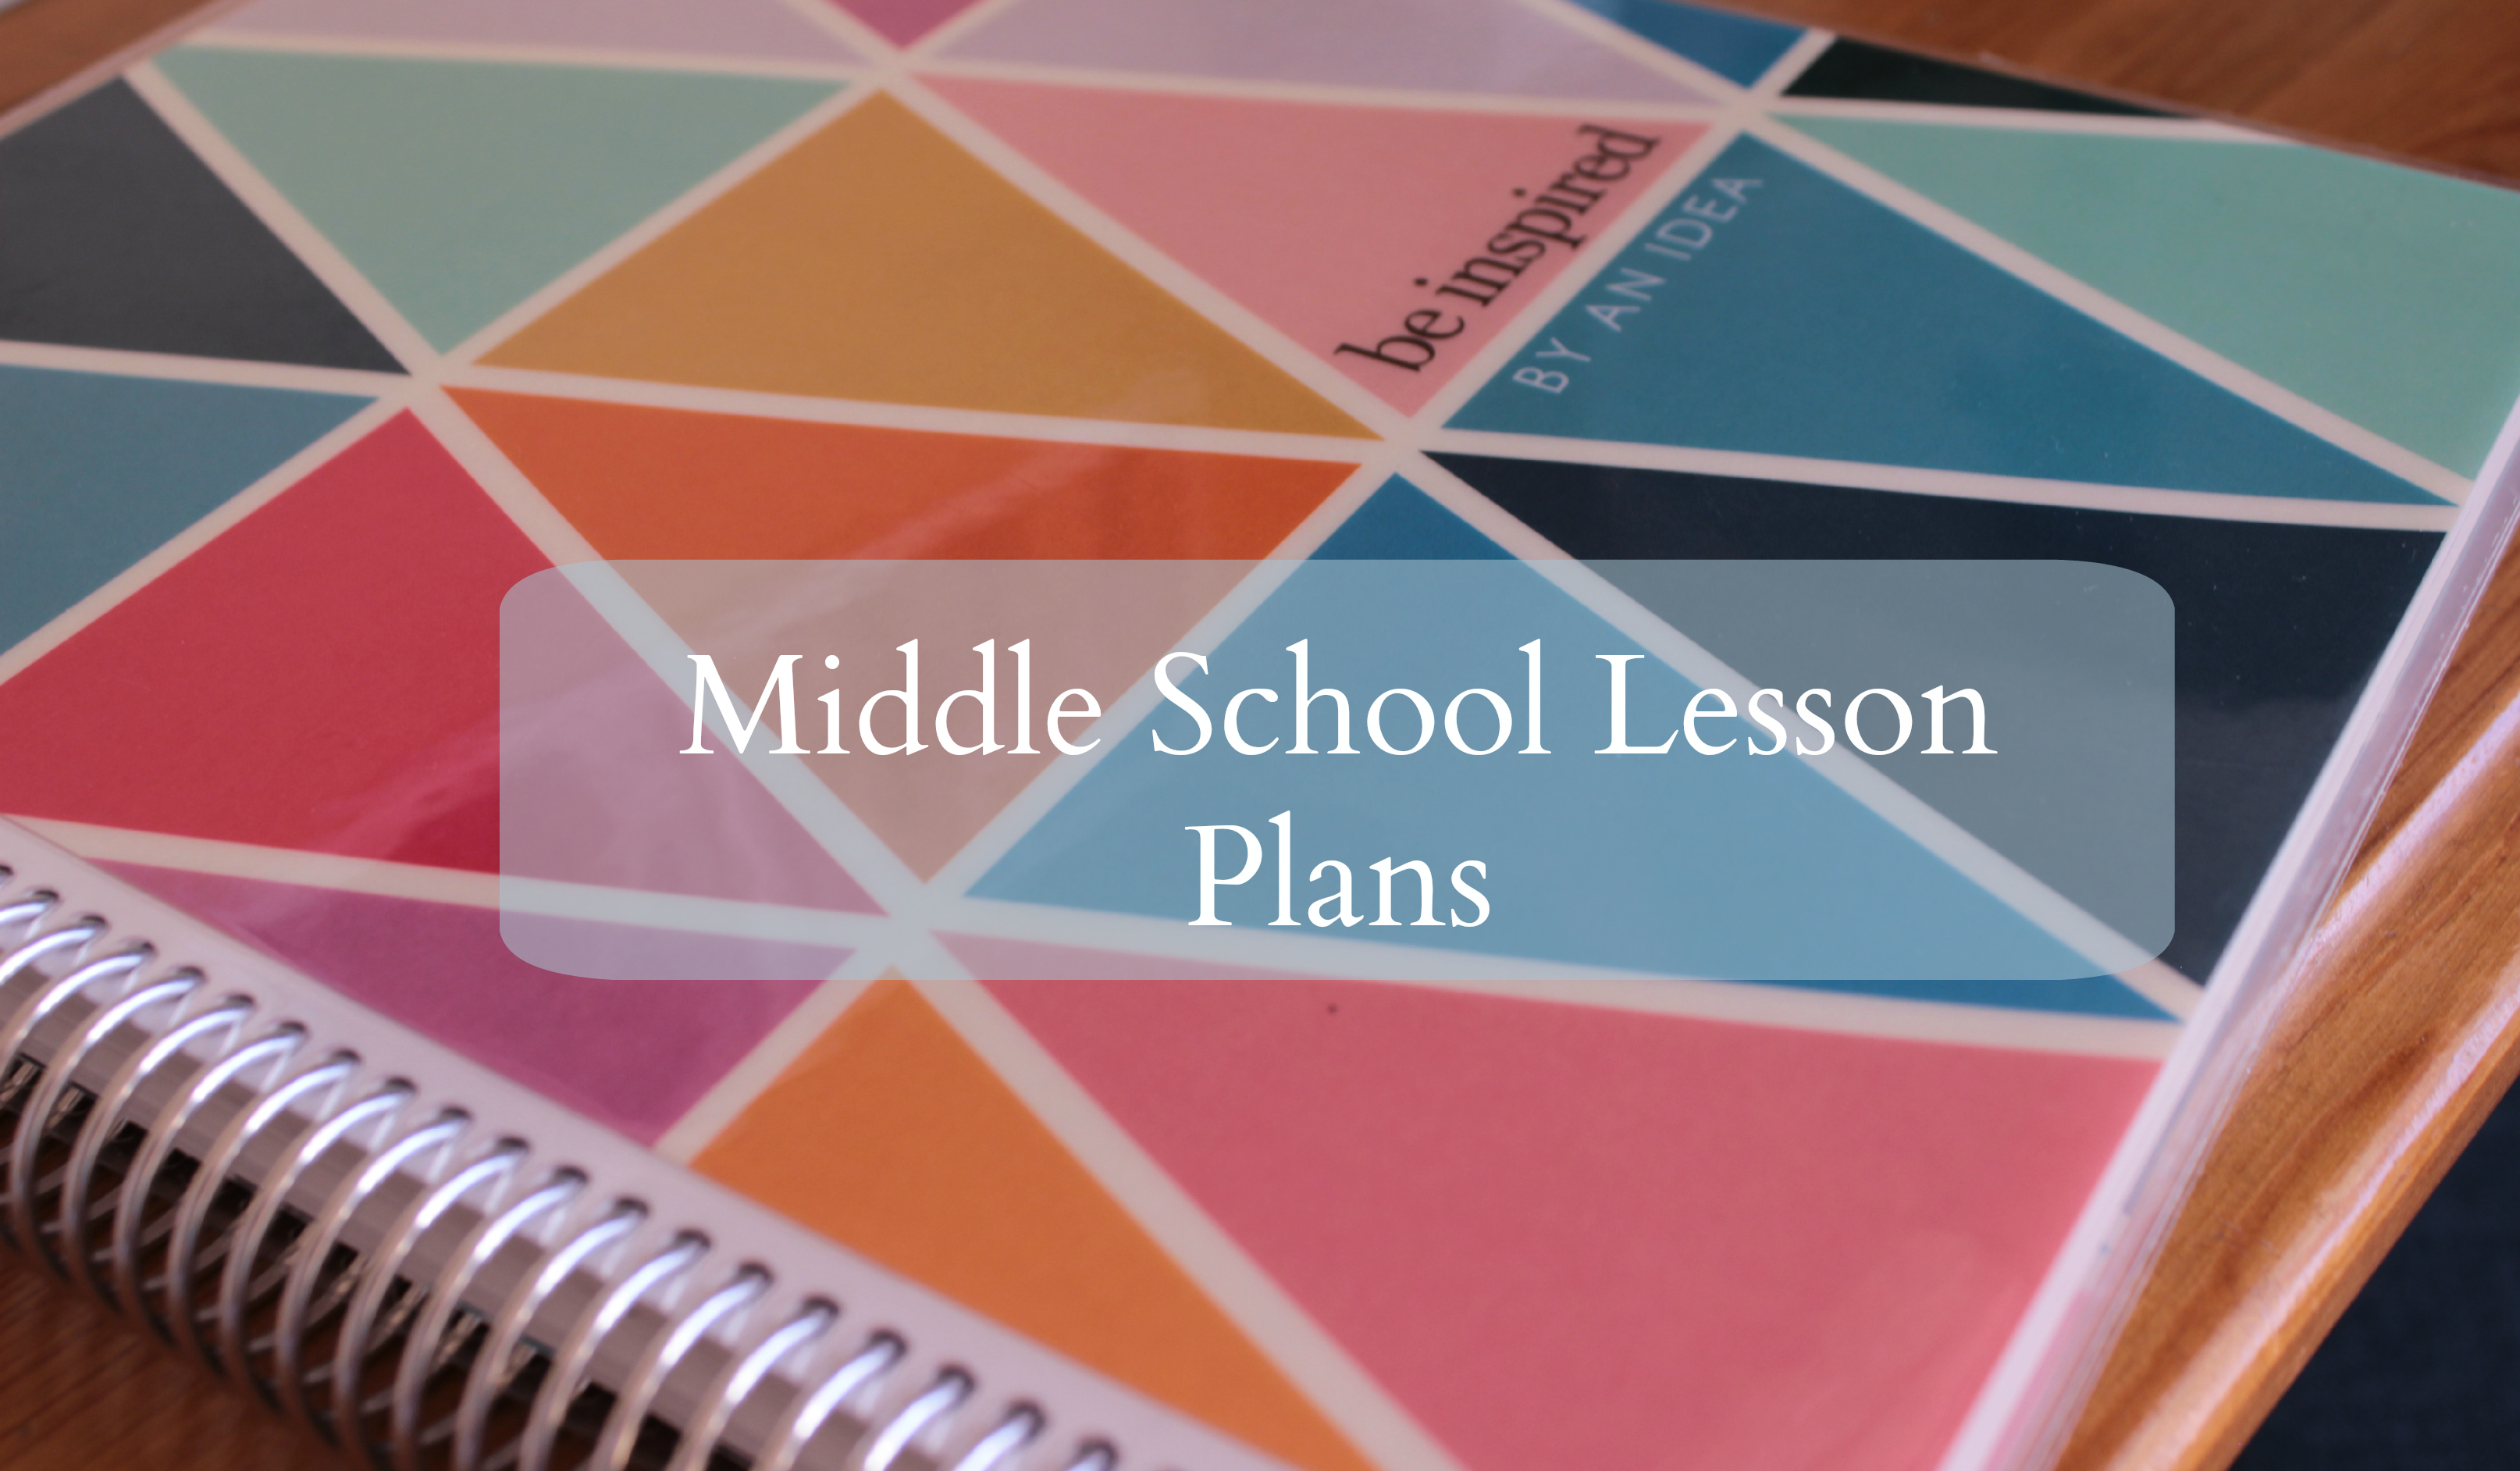 middleschoollessonplans